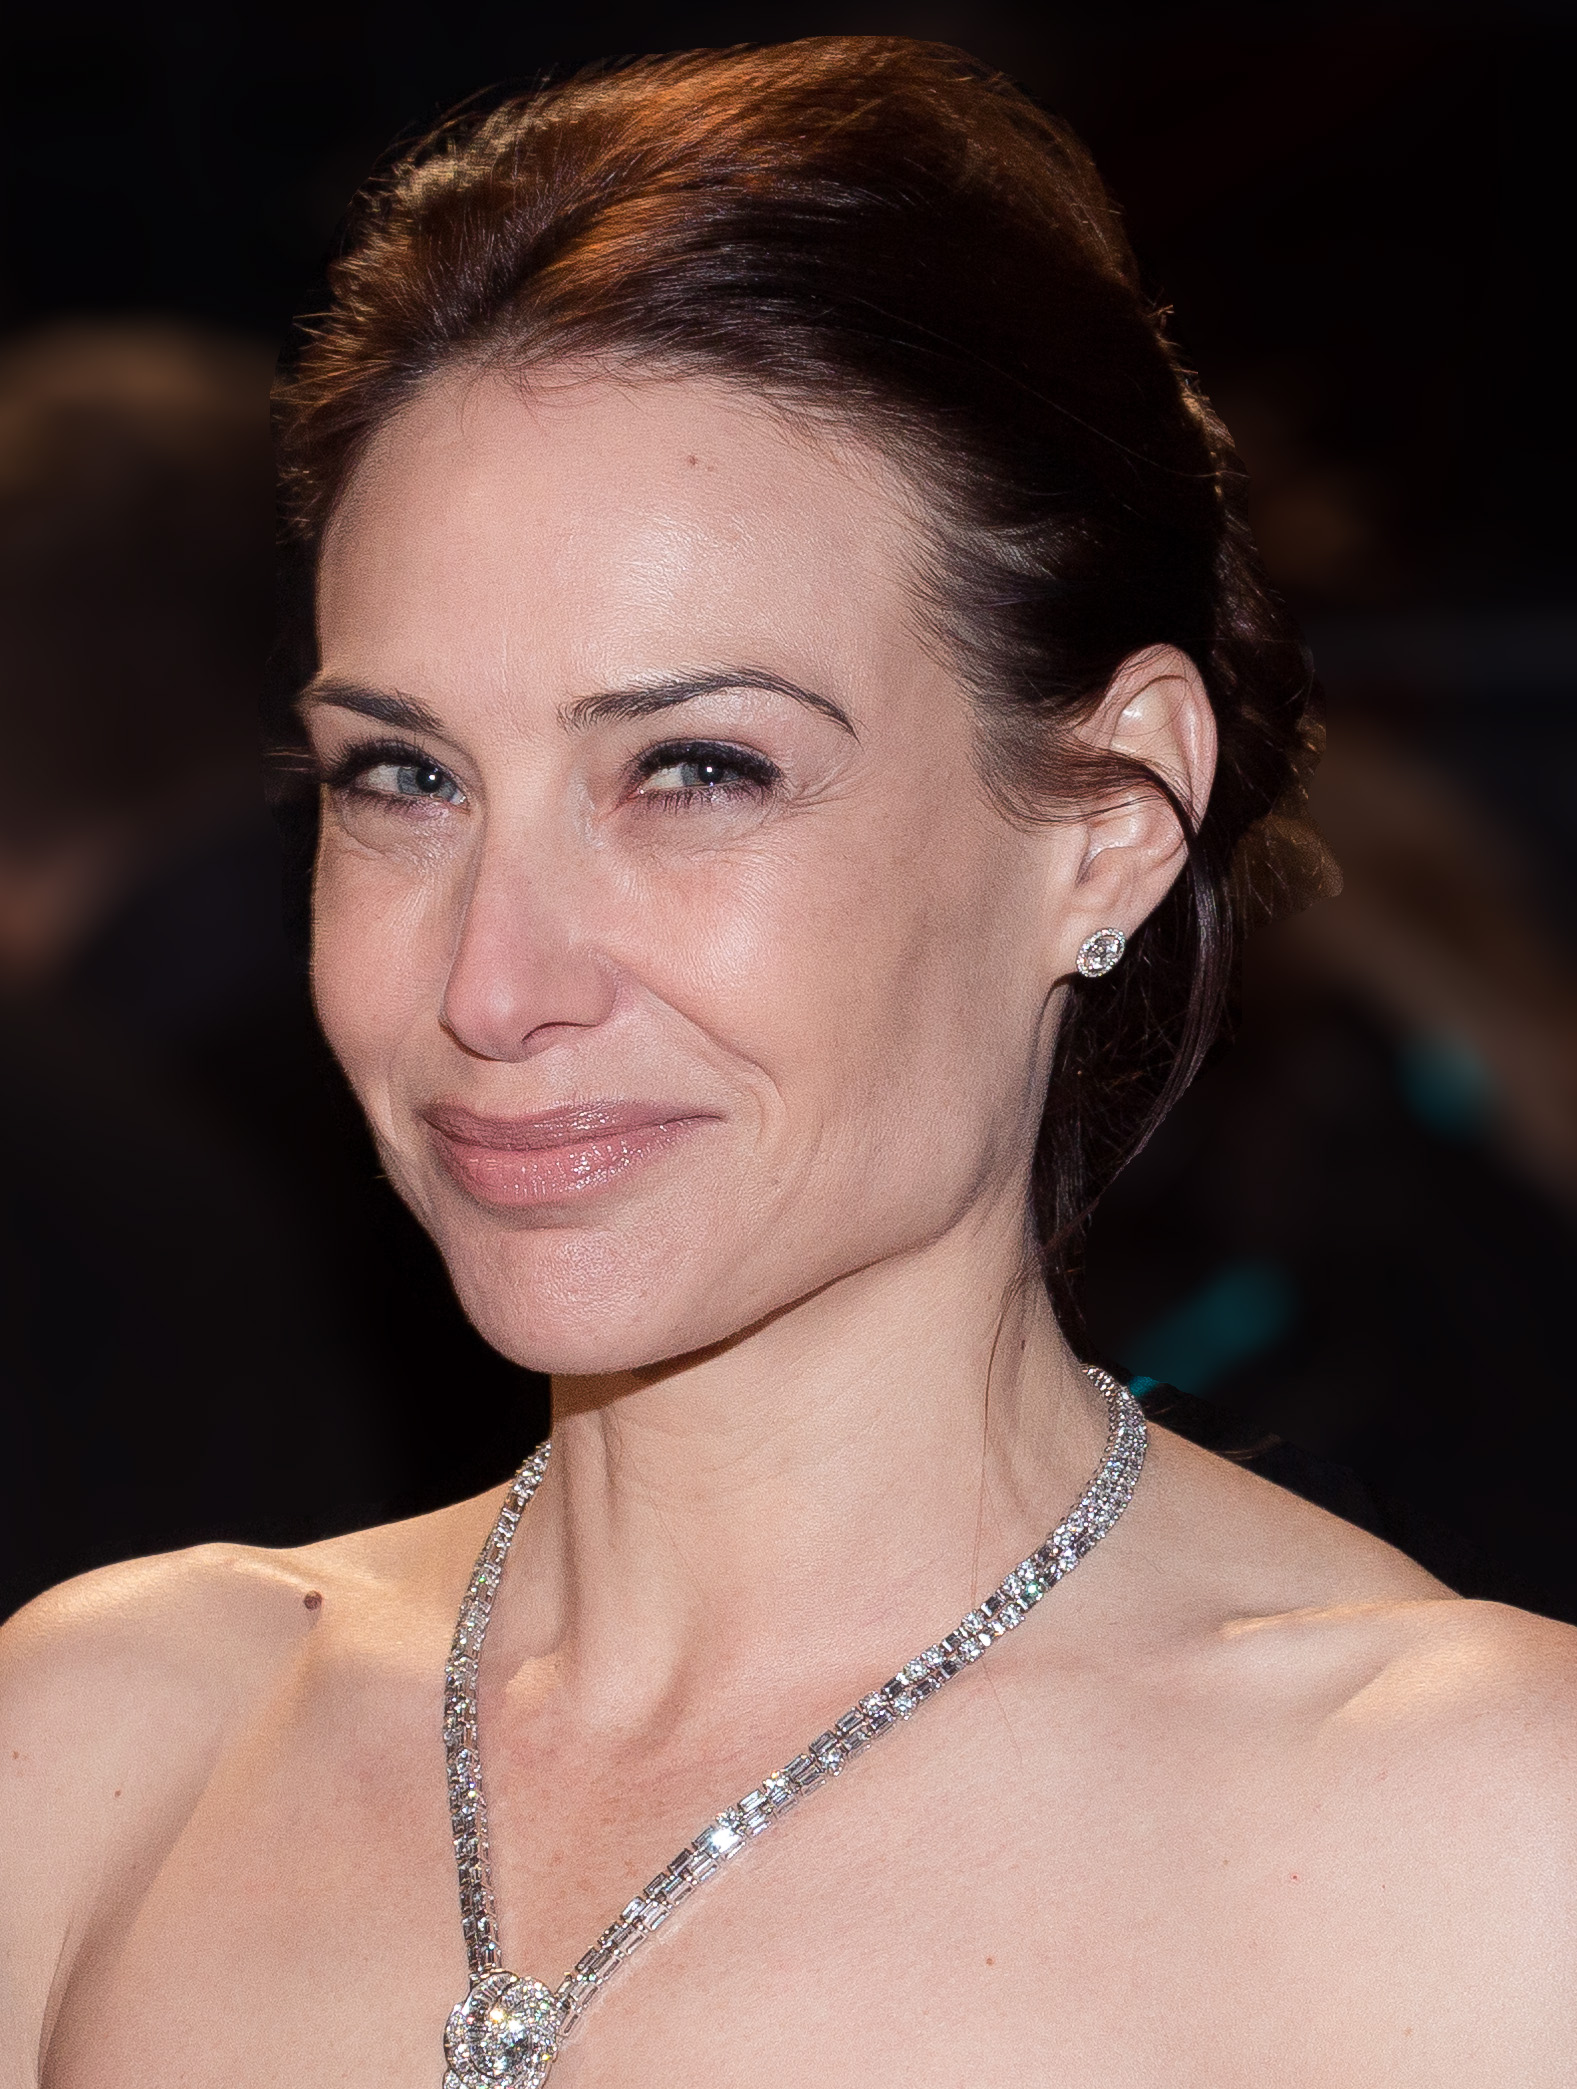 Claire Forlani a gagné  un salaire d'un million de dollar, laissant fortune 5 million en date de 2017